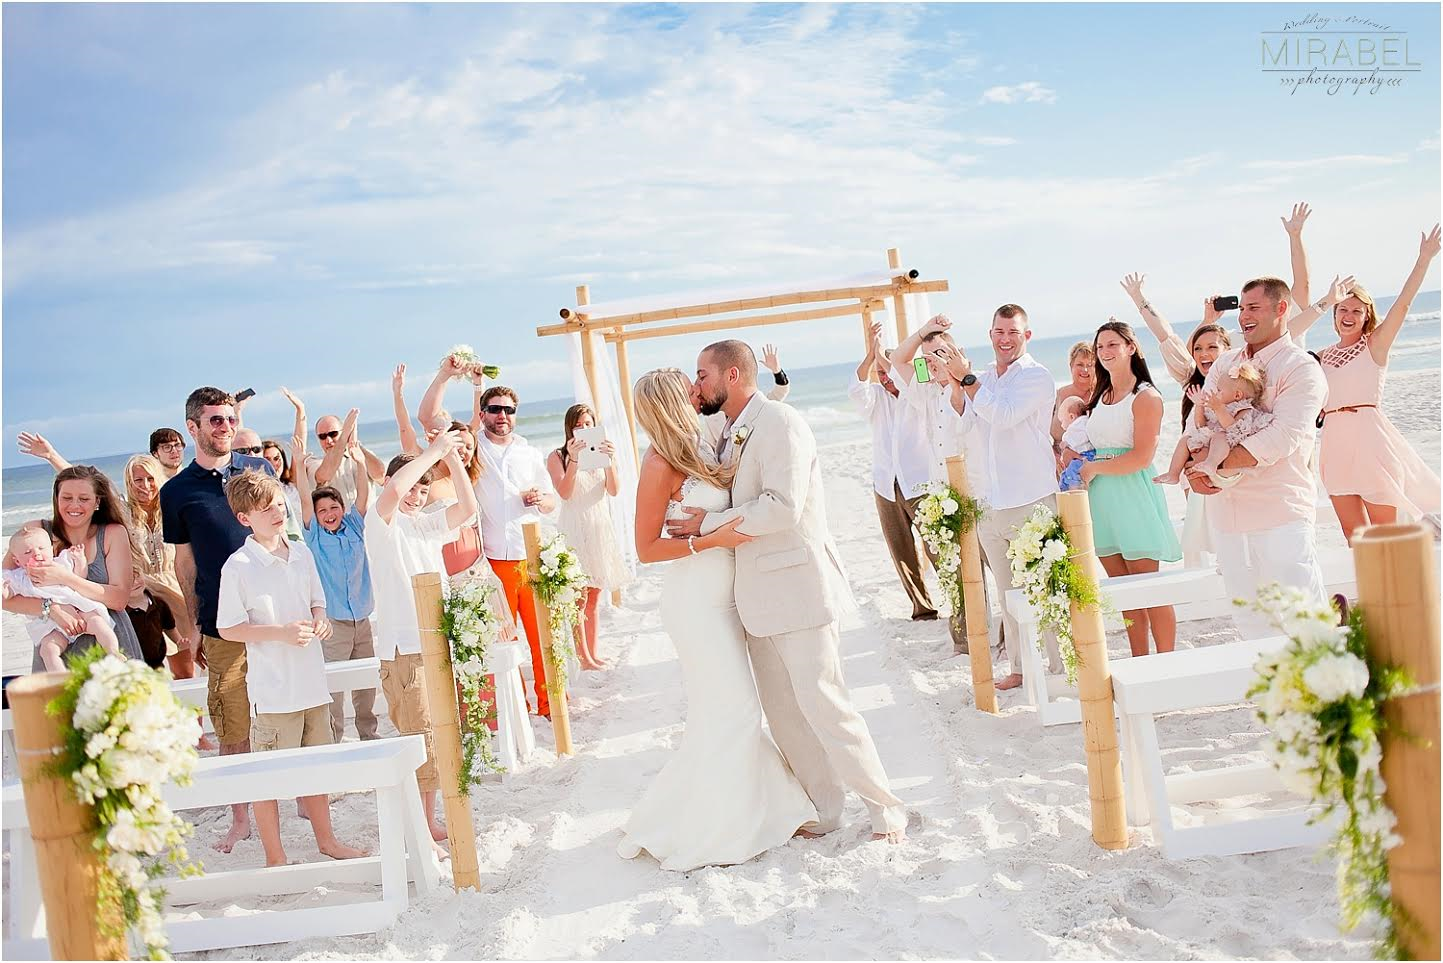 Wedding Ceremony Packages: Ceremony Packages